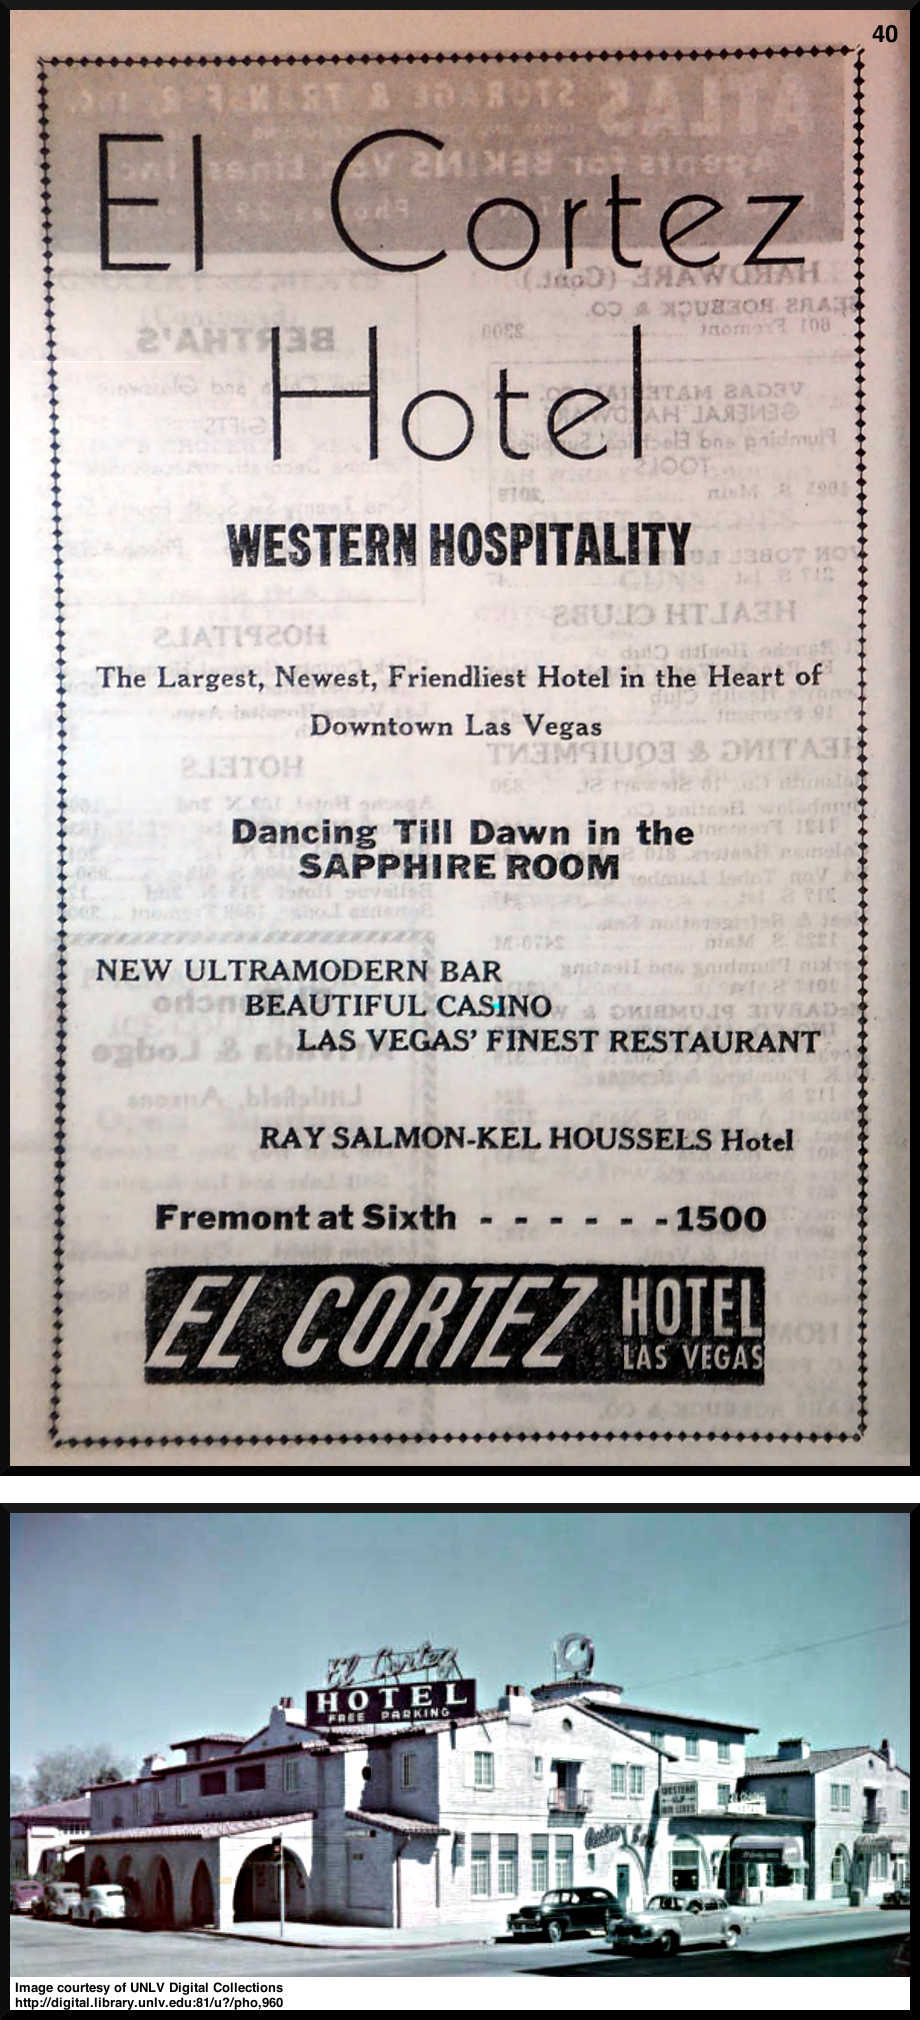 El Cortez photo is courtesy of UNLV Digital Collections